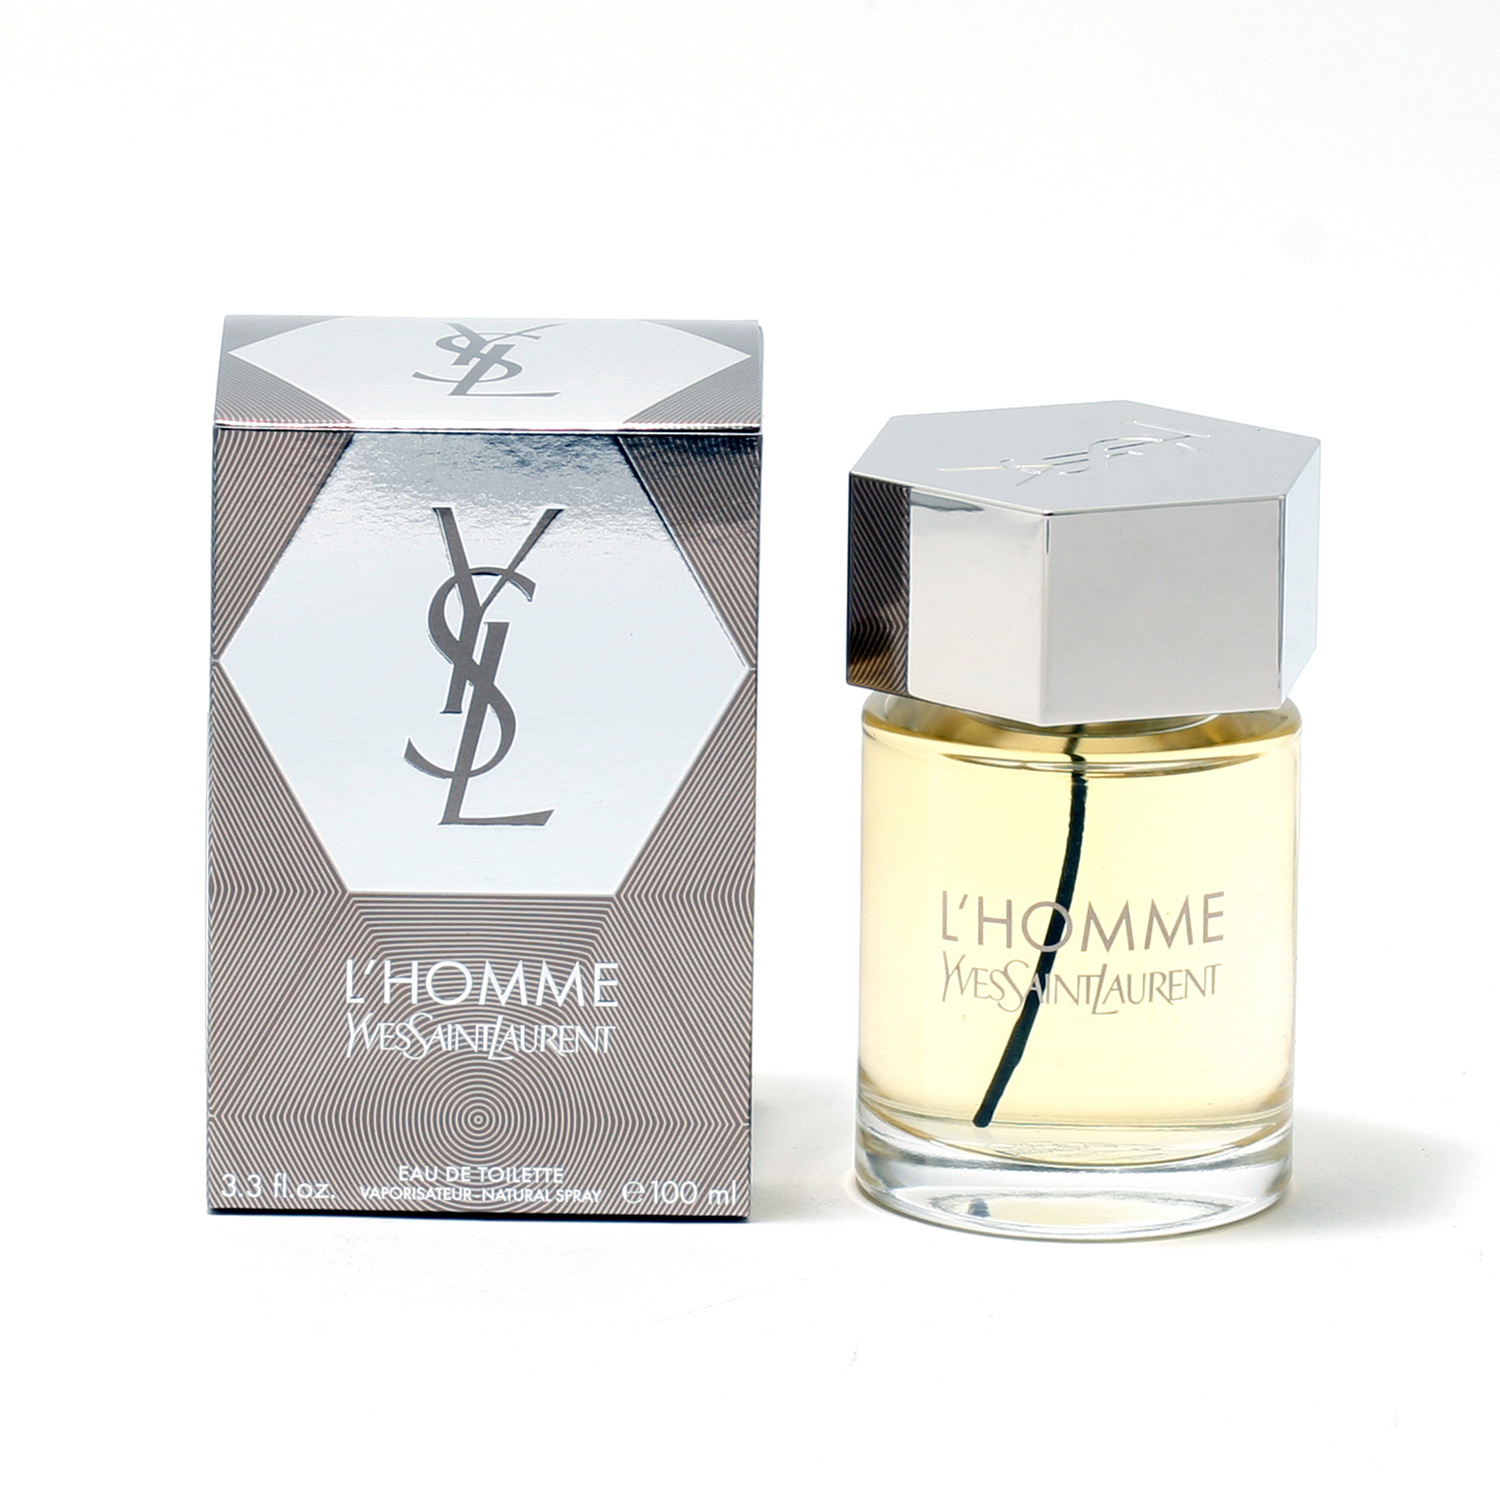 YVES SAINT LAURENT L'HOMME – EDT SPRAY - Yves Saint Laurent - Perfume Discount